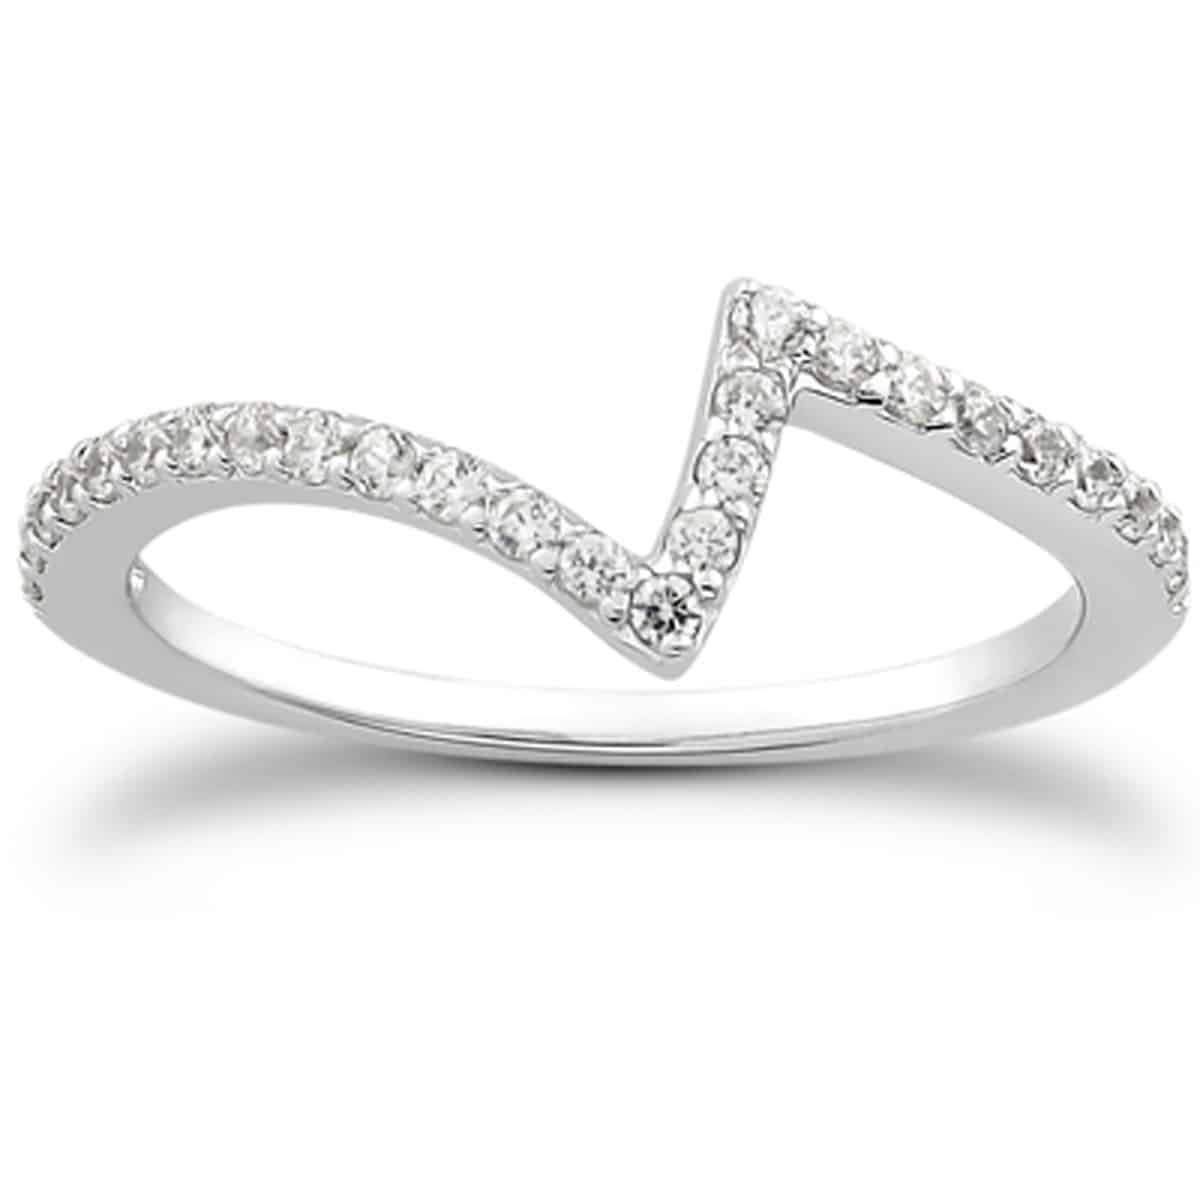 14K White Gold Fancy Zig Zag Pave Diamond Wedding Ring Band | Diamond  Designs | Orange, Ct Jewelry Store Intended For Most Recent Diamond Zig Zag Anniversary Rings In White Gold (View 6 of 25)